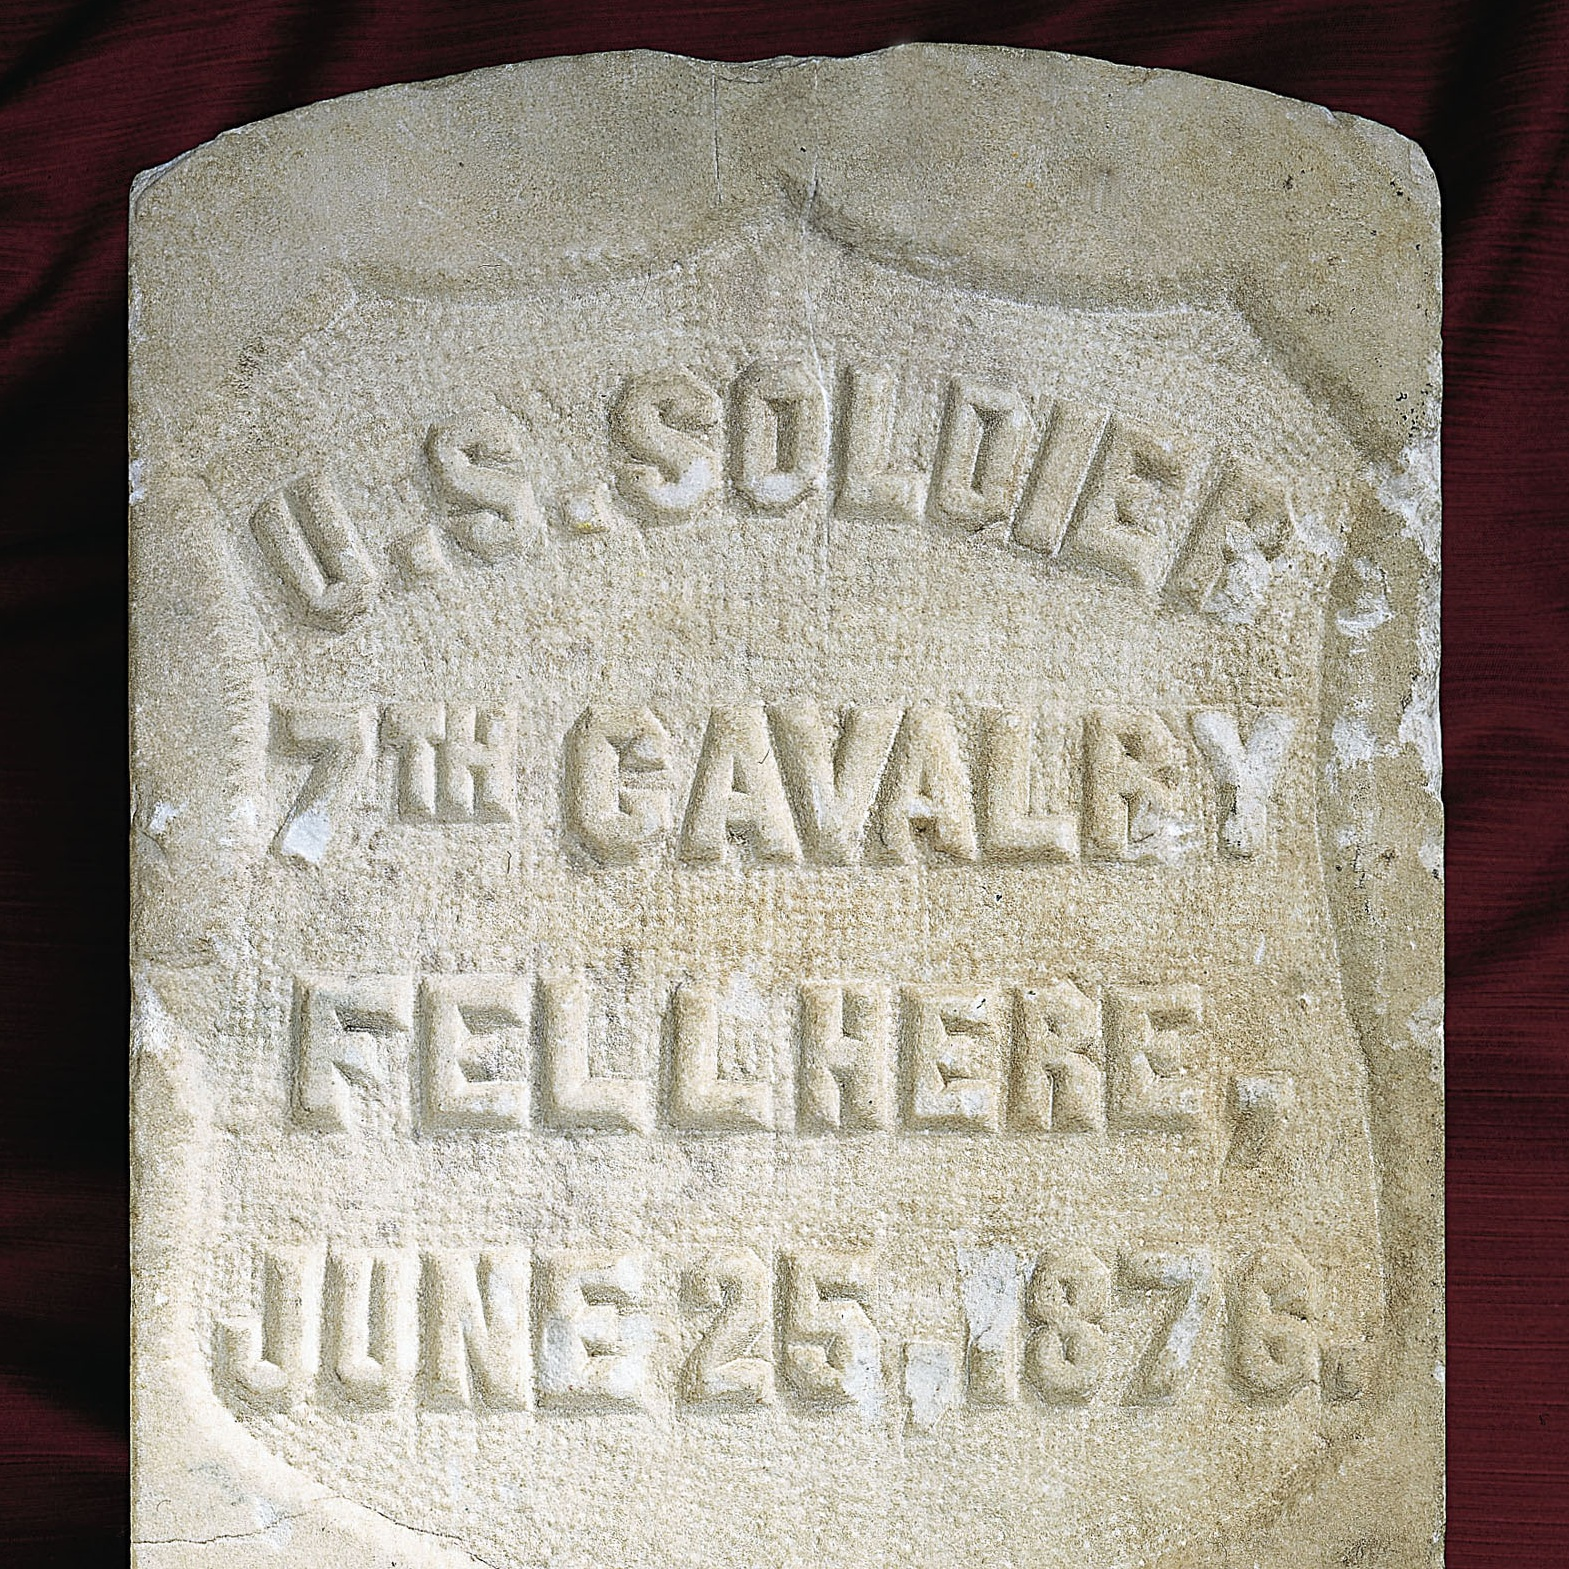 Detail of Seventh Cavalry marker from the Battle of Little Bighorn. American, c. 1890. Marble. Frazier History Museum Collection.